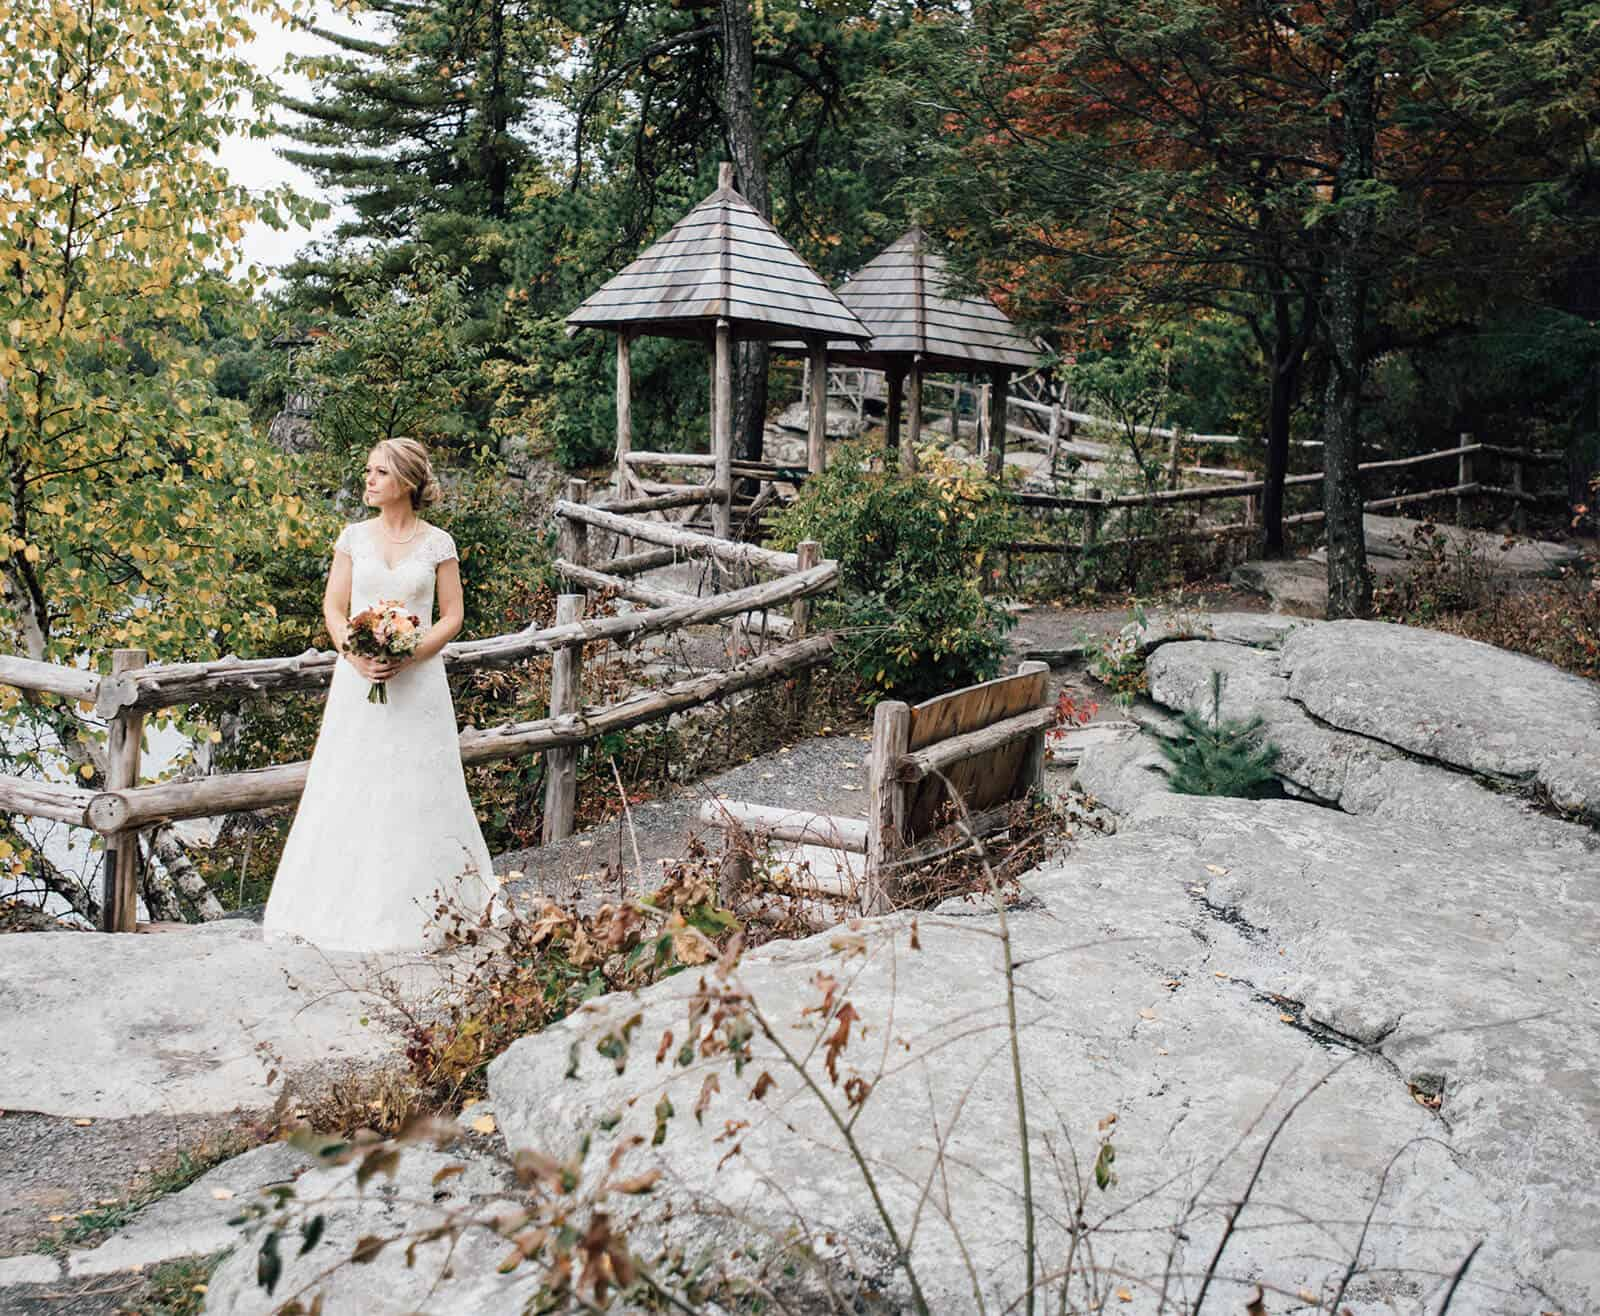 Wedding Photo at Mohonk Mountain House